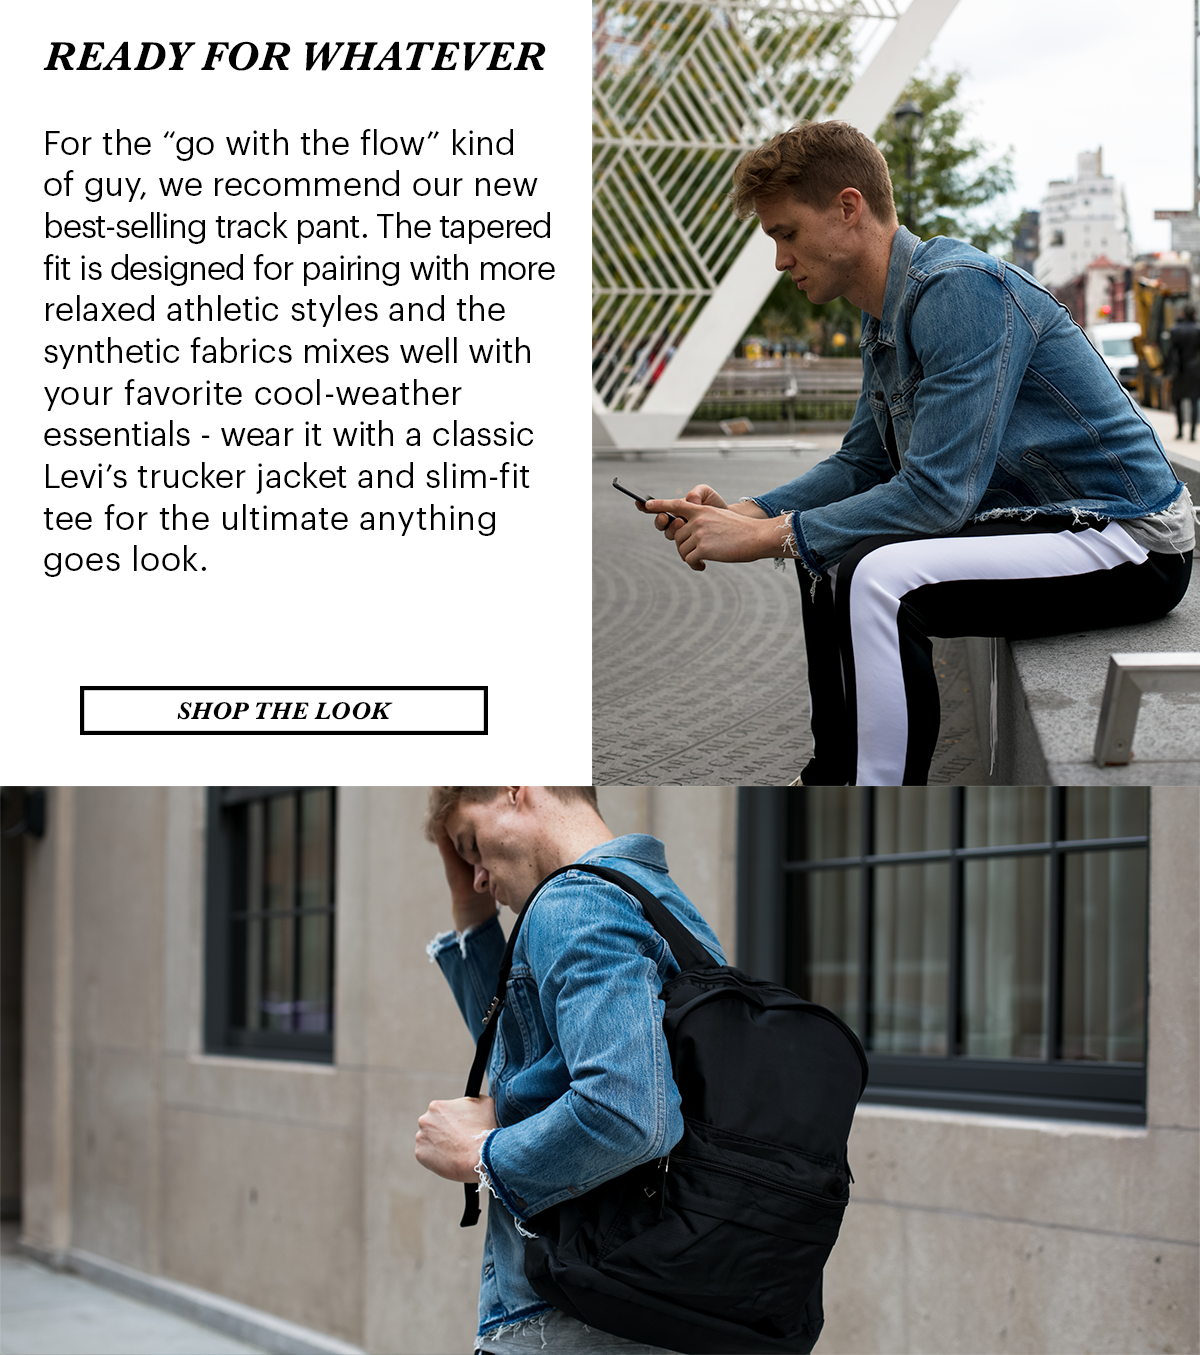 """Ready for Whatever. For the """"go with the flow"""" kind of guy, we recommend our new best-selling track pant. The tapered fit is designed for pairing with more relaxed athletic styles and the synthetic fabrics mix well with your favorite cool-weather essentials - wear it with a classic Levi&squot;s trucker jacket and slim-fit tee for the ultimate anything goes look. 